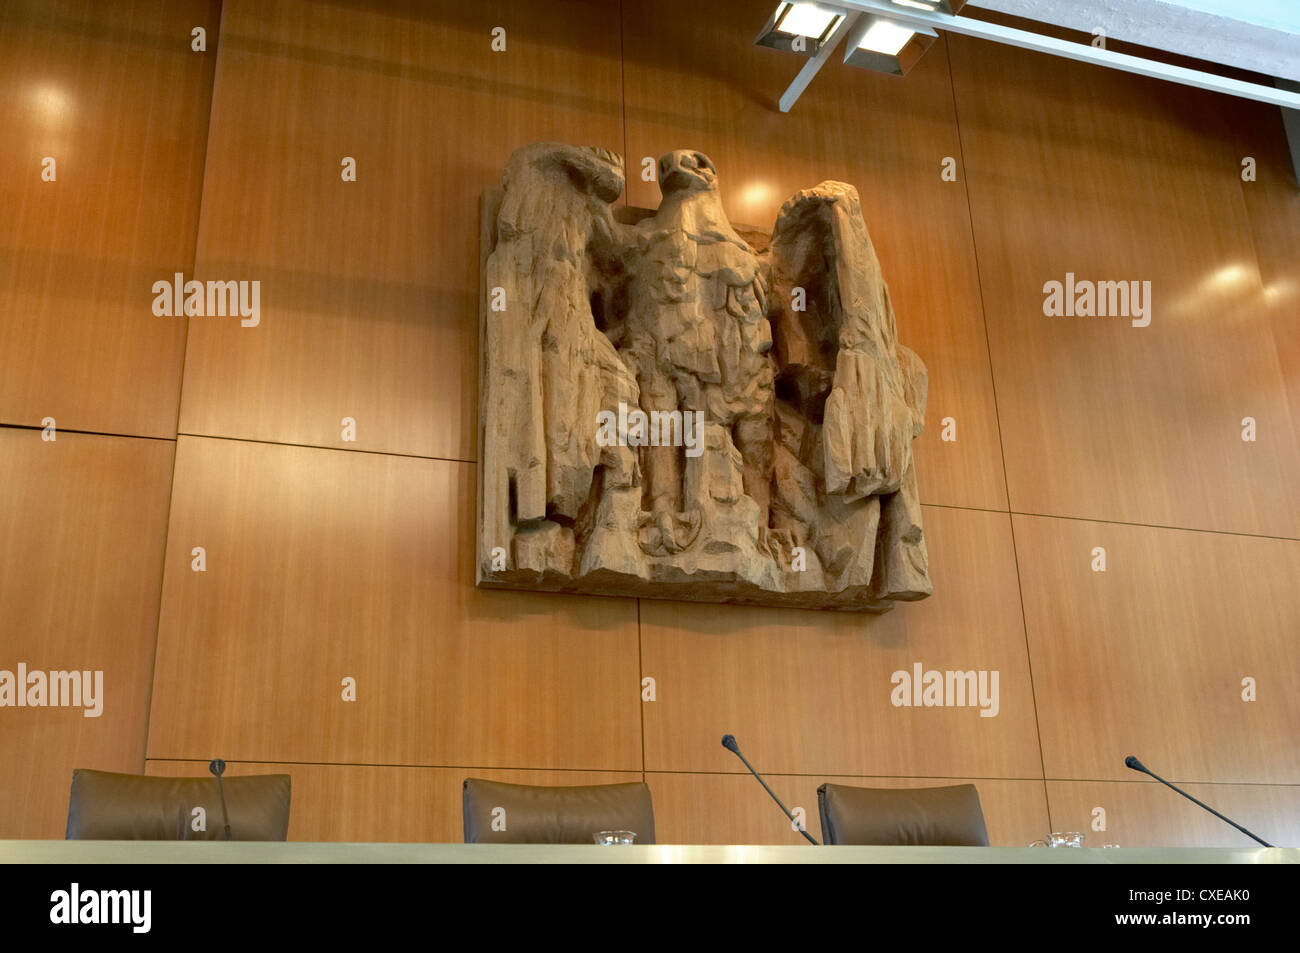 Karlsruhe, Germany - German eagle and the bench in the Federal Constitutional Court Stock Photo